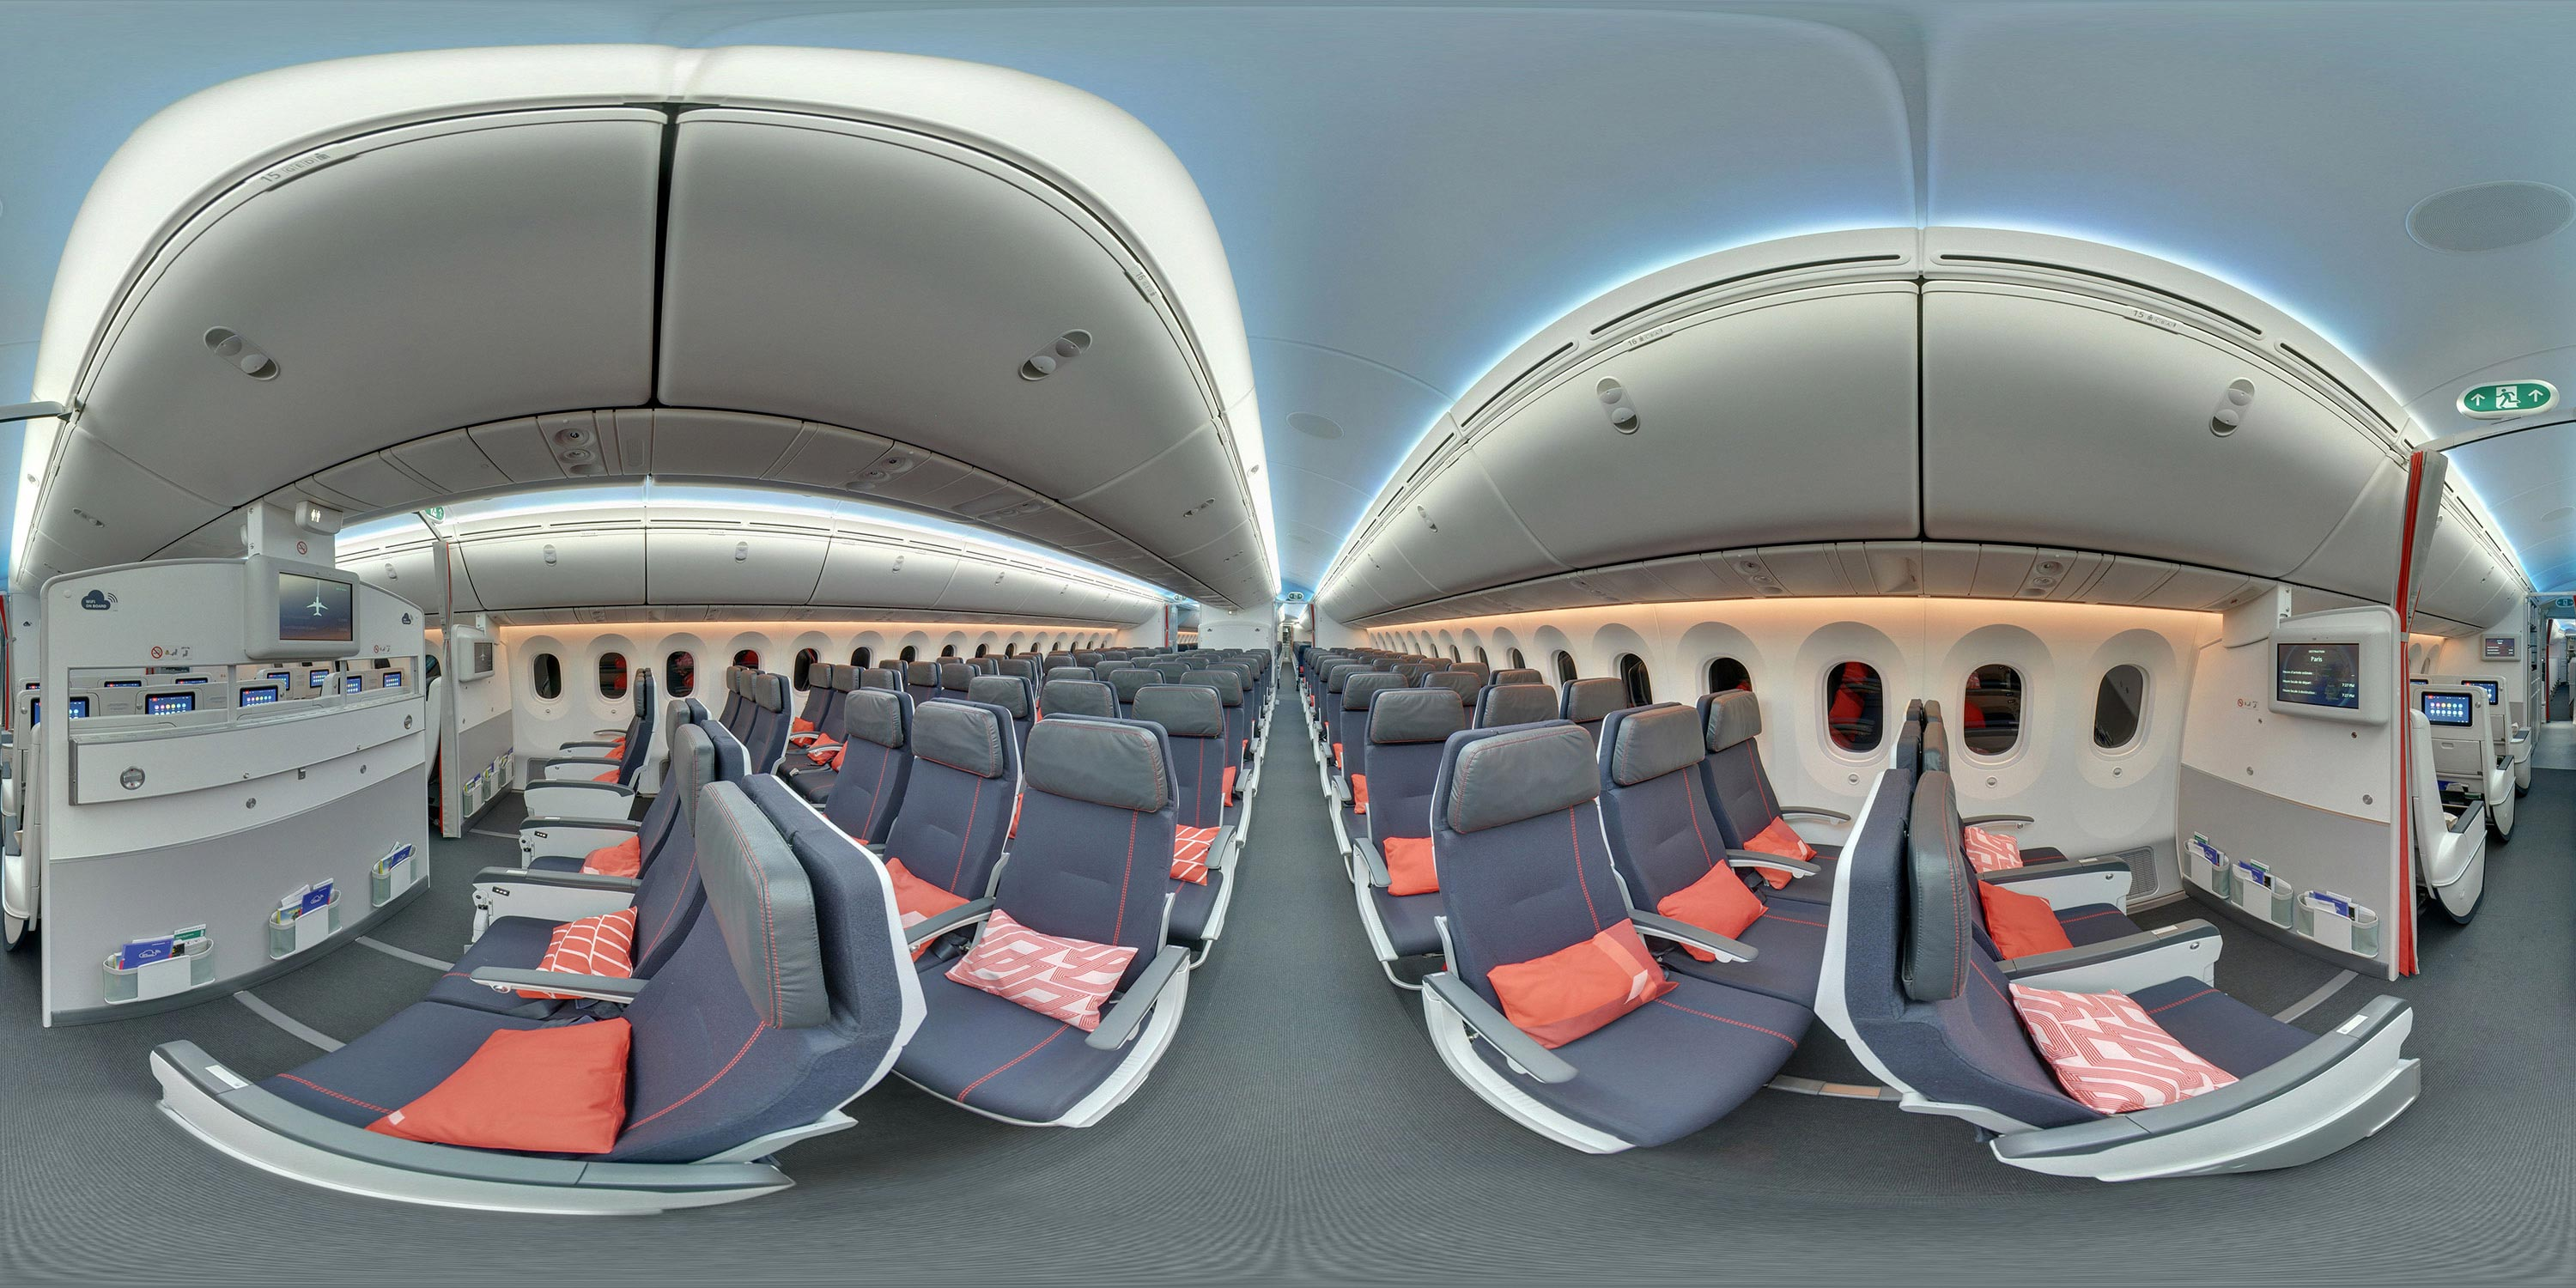 Boeing 787-900 - 276 seats